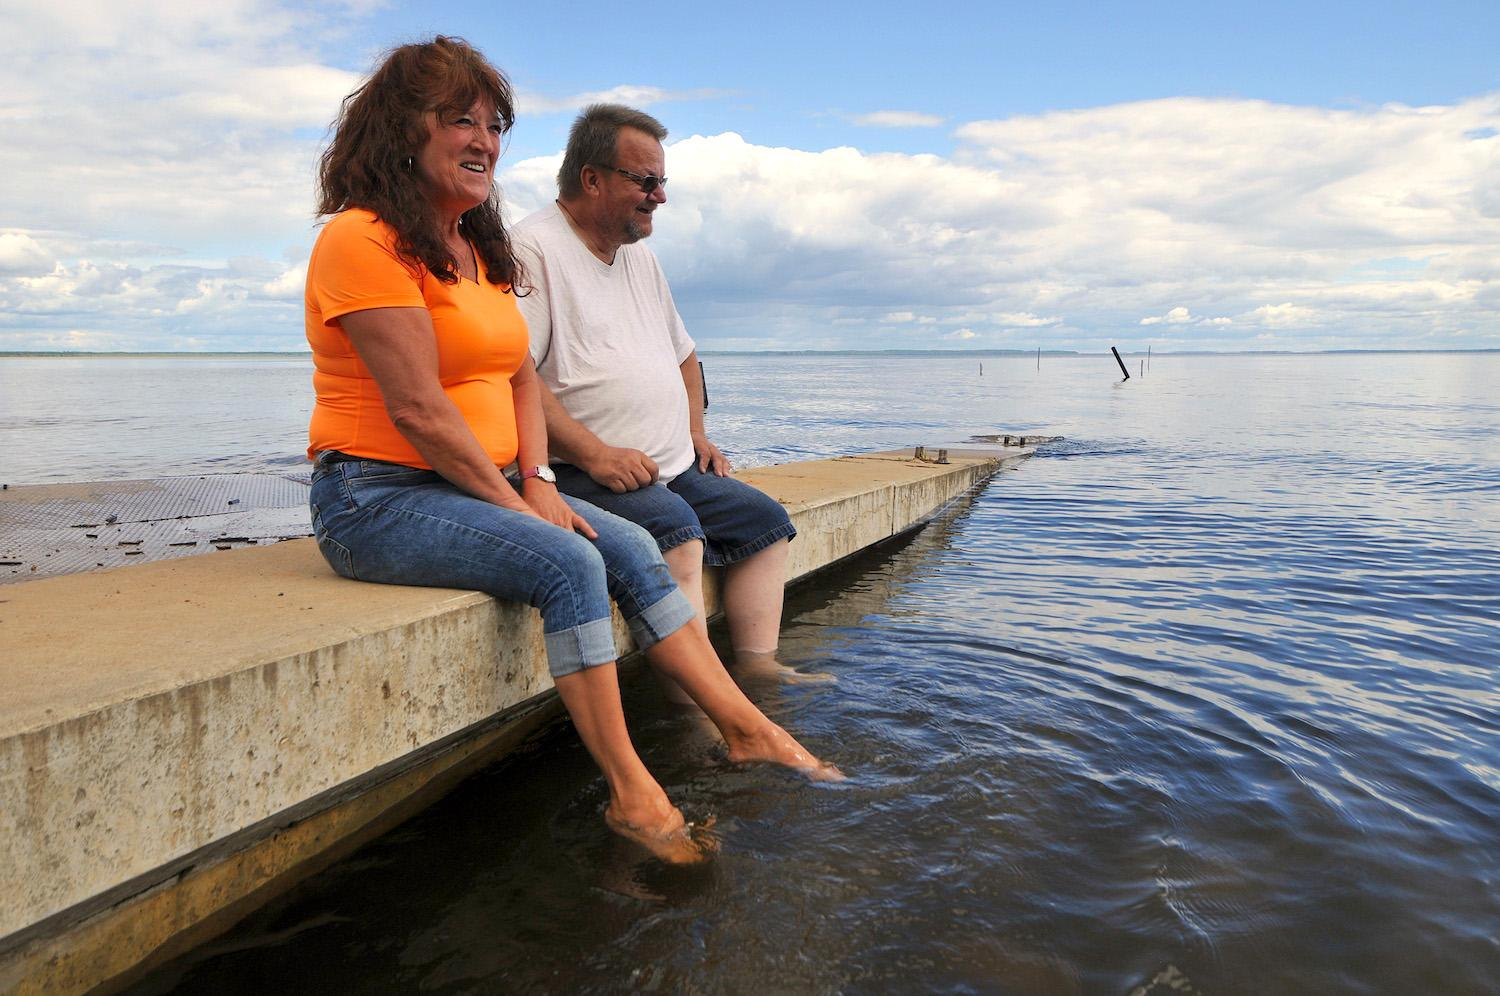 A couple sit on a dock in Plamondon Lac La Biche looking out at the water